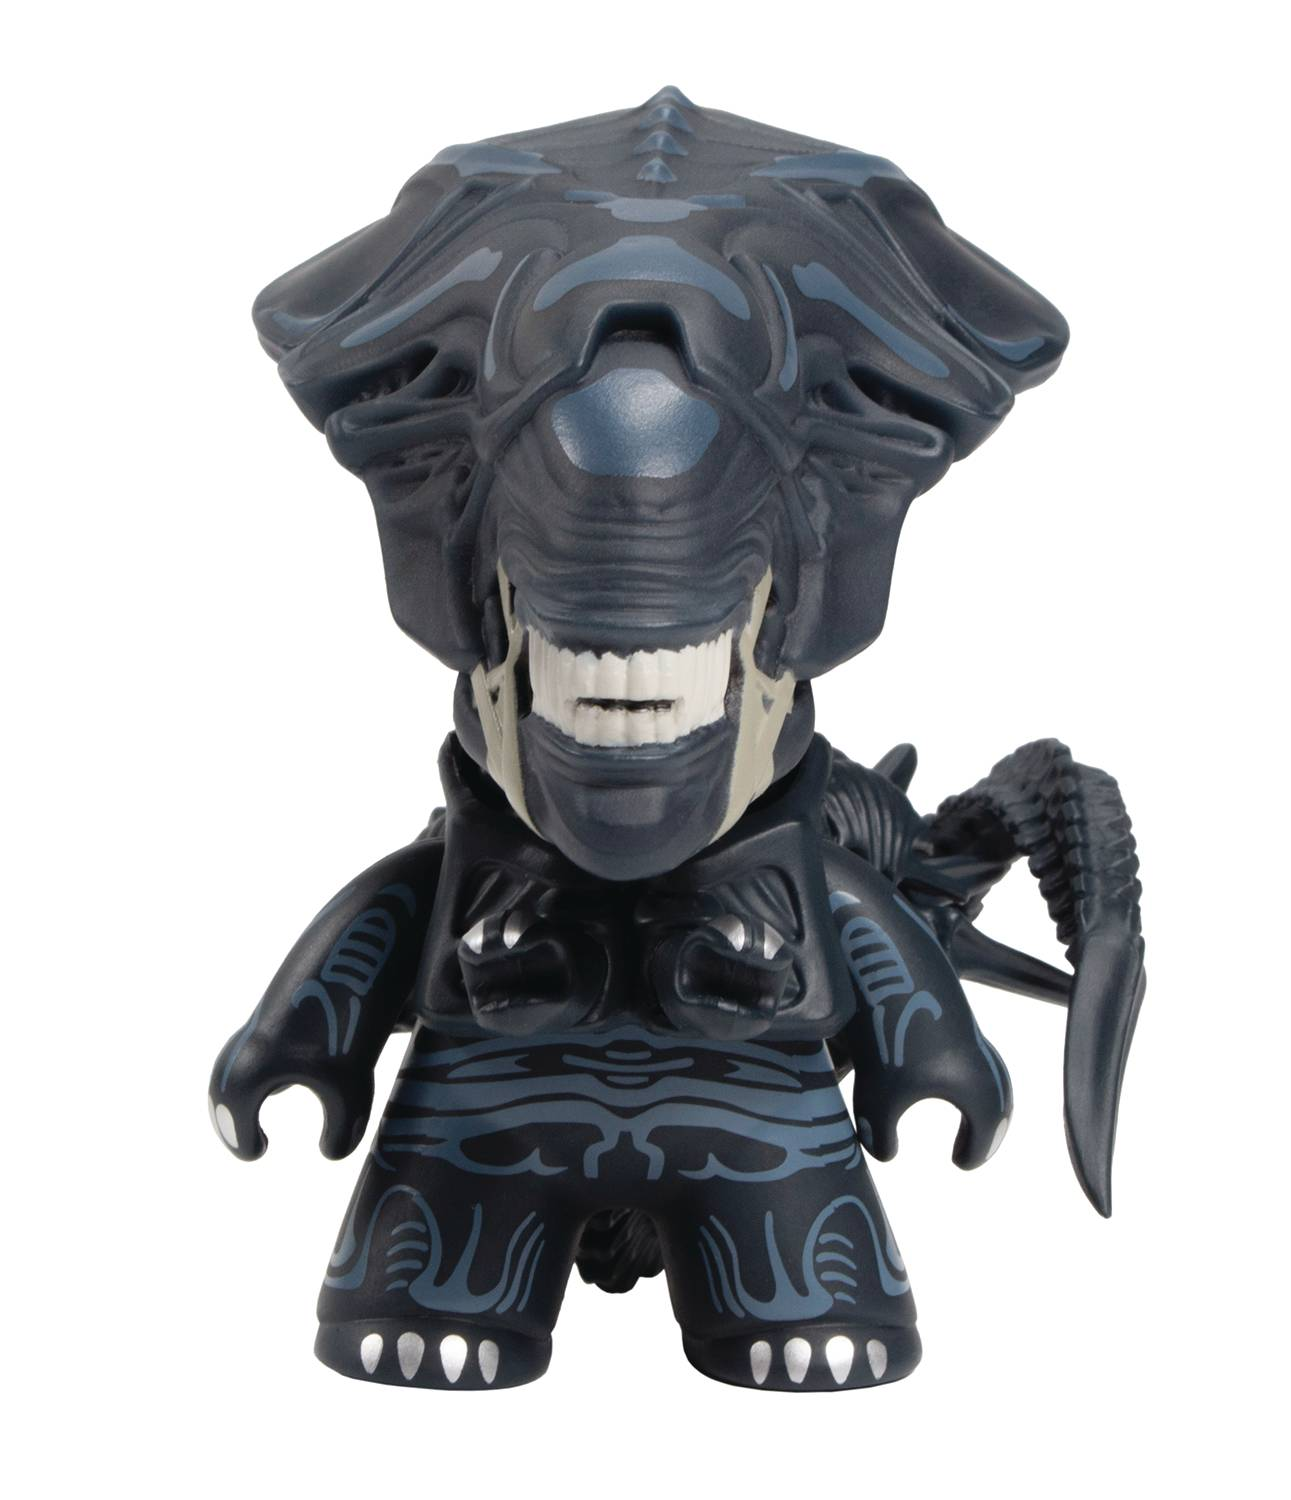 Aliens Titans Alien Queen 6-Inch Vinyl Figure